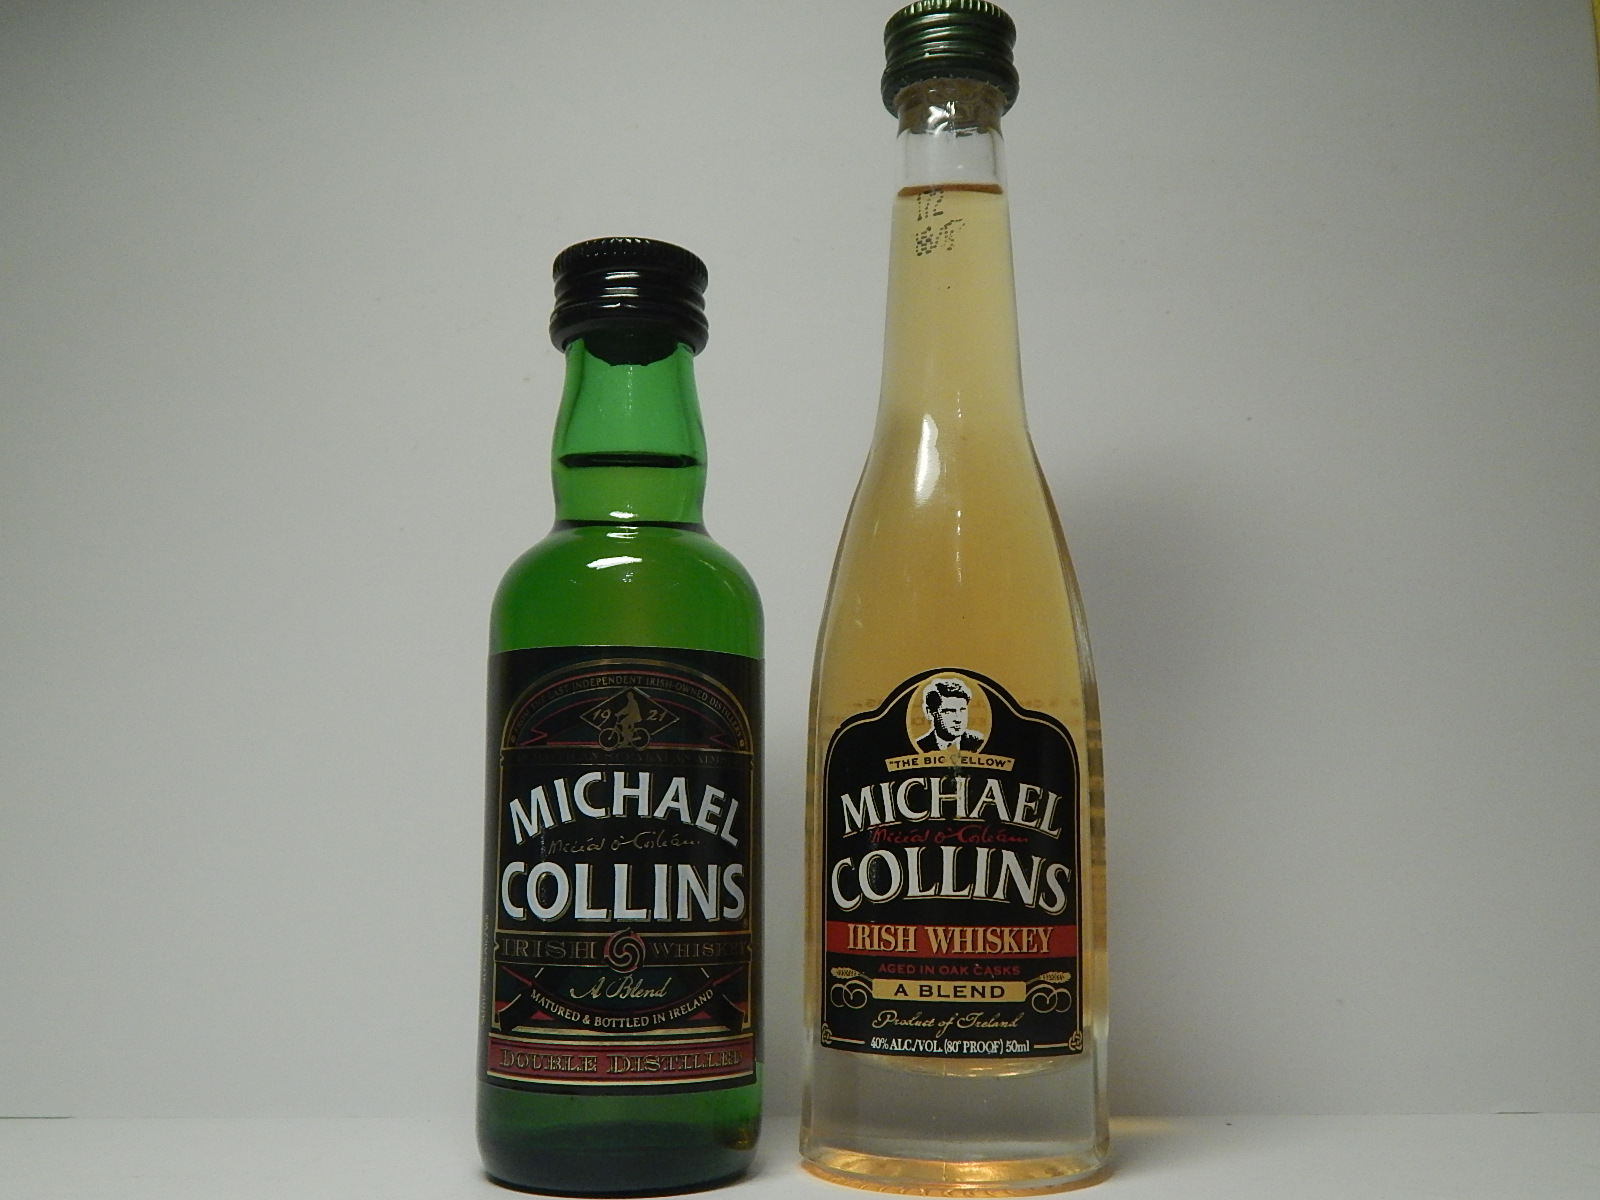 MICHAEL COLLINS Irish Whiskey